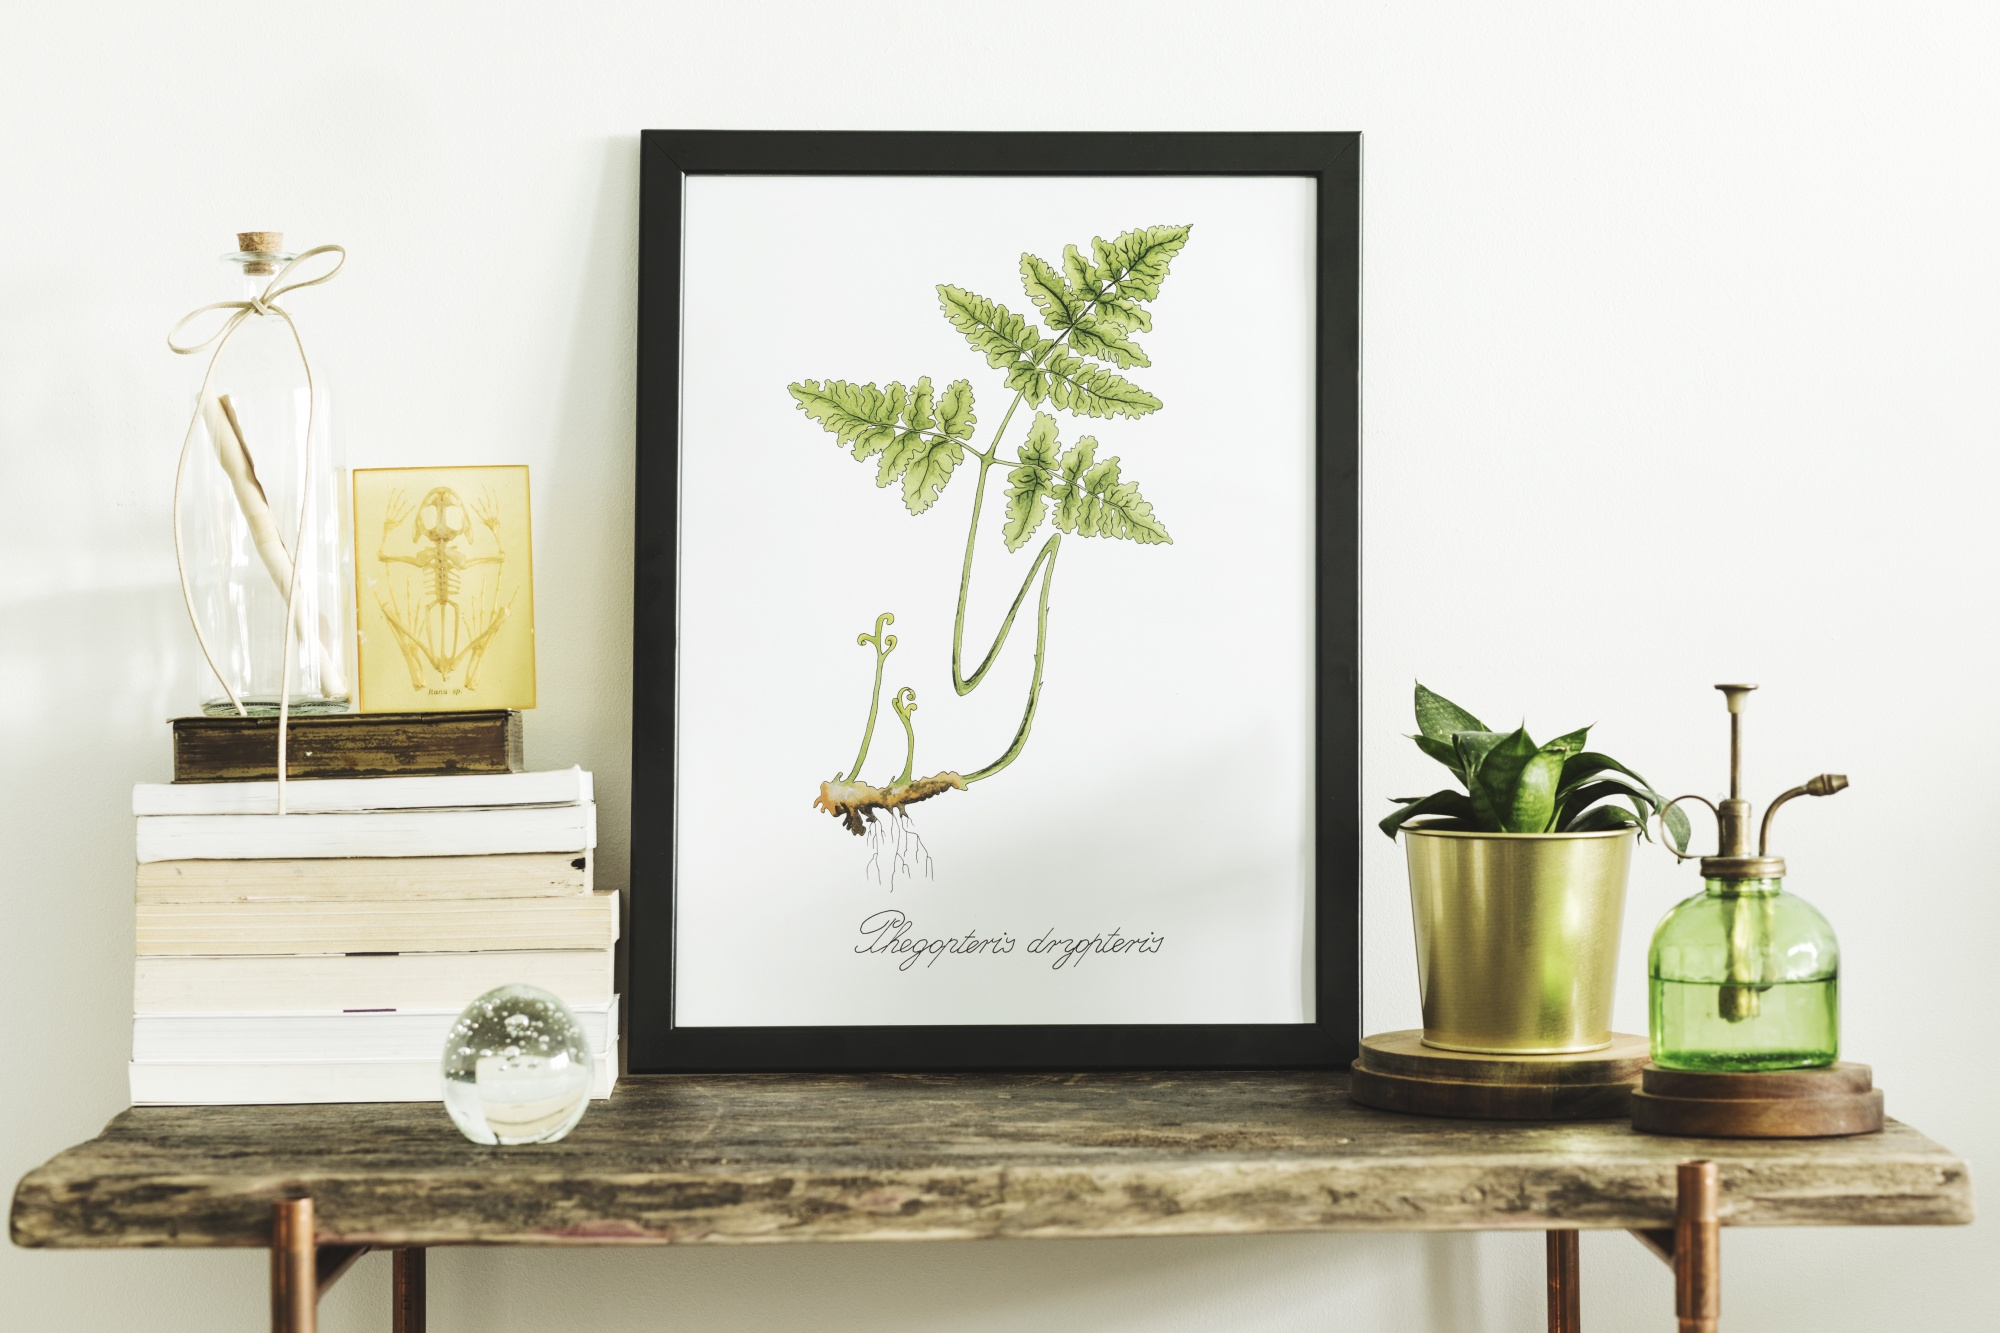 How to elegantly style your console table with natural elements, books, plants and a framed photo styled